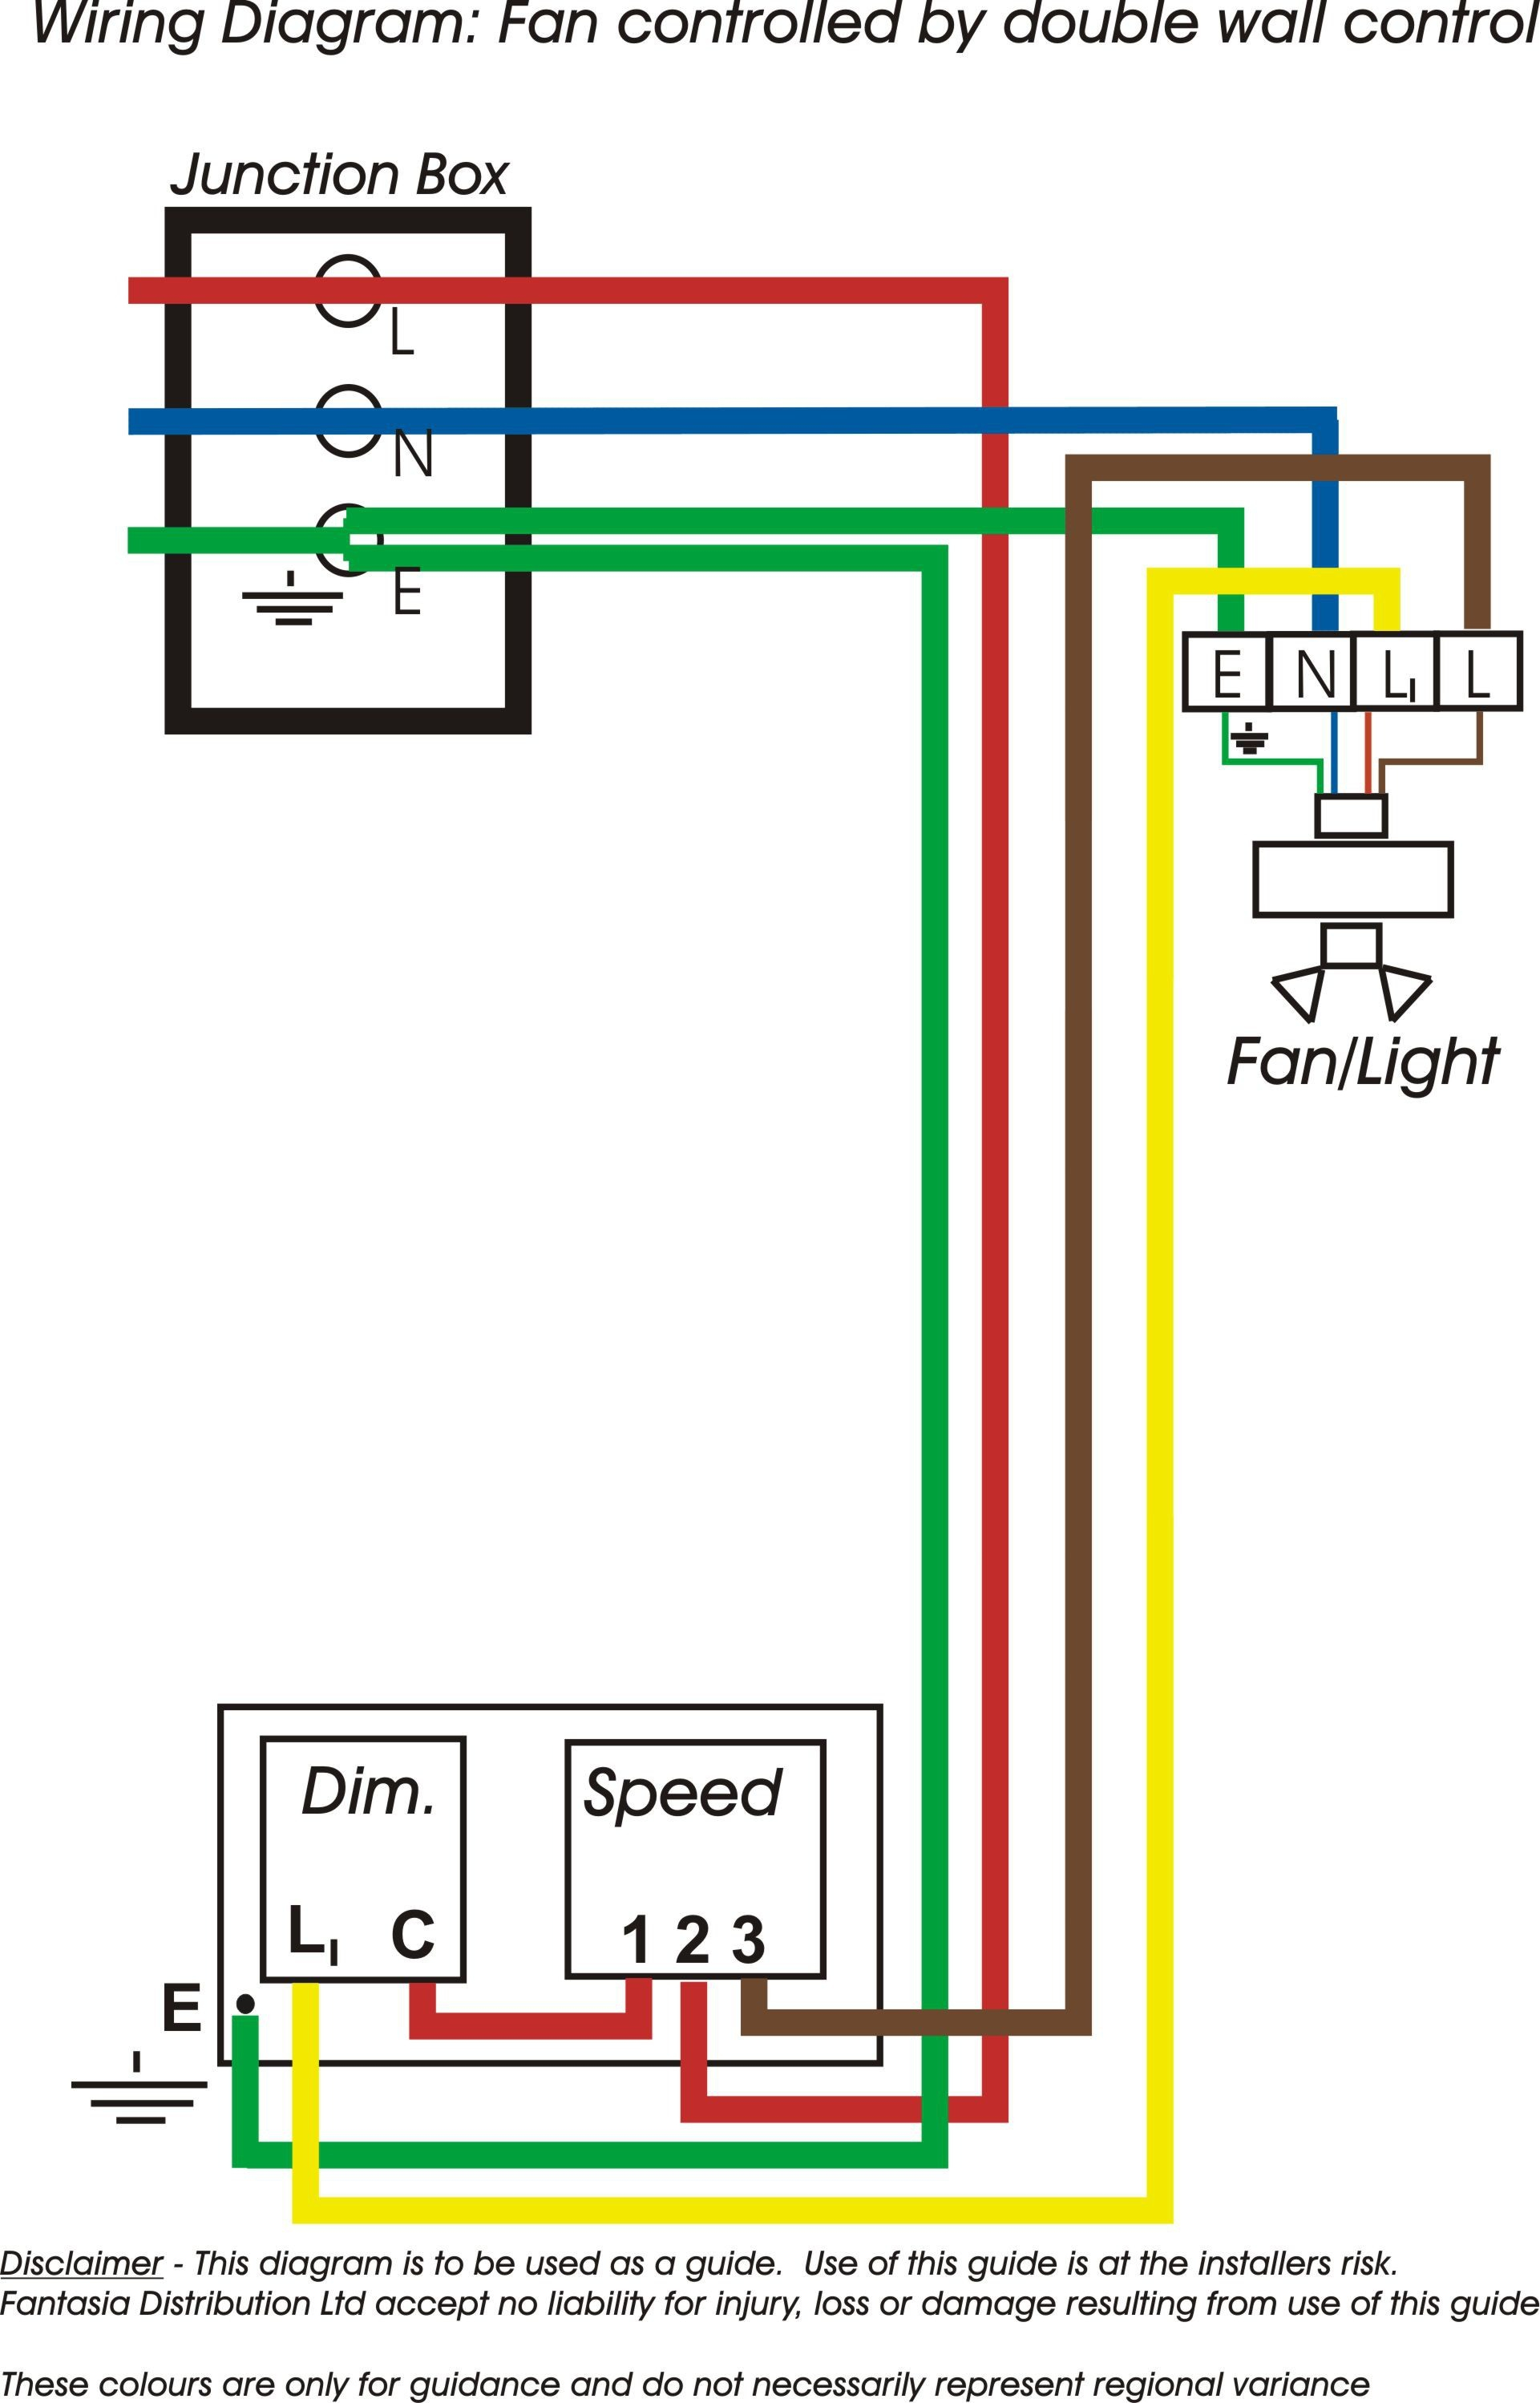 ceiling fan 3 speed wall switch wiring diagram Download-Capacitor Wiring Diagram Best Unique 3 Speed Ceiling Fan Switch Wiring Diagram Diagram 10-b